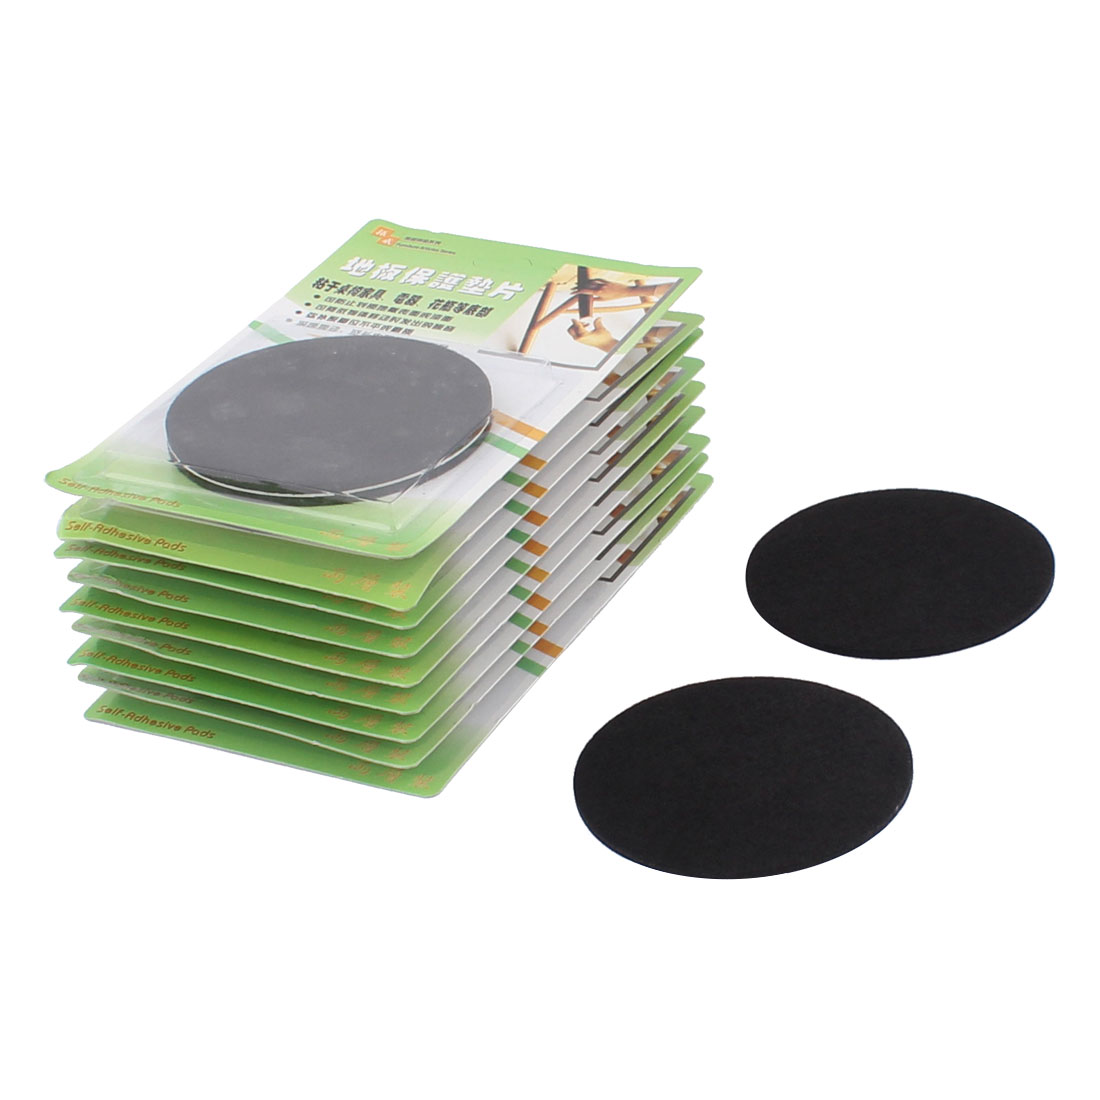 Cabinet Desk Legs Self Adhesive Floor Protection Furniture Felt Pads Mats Black 85mm Diameter 20pcs